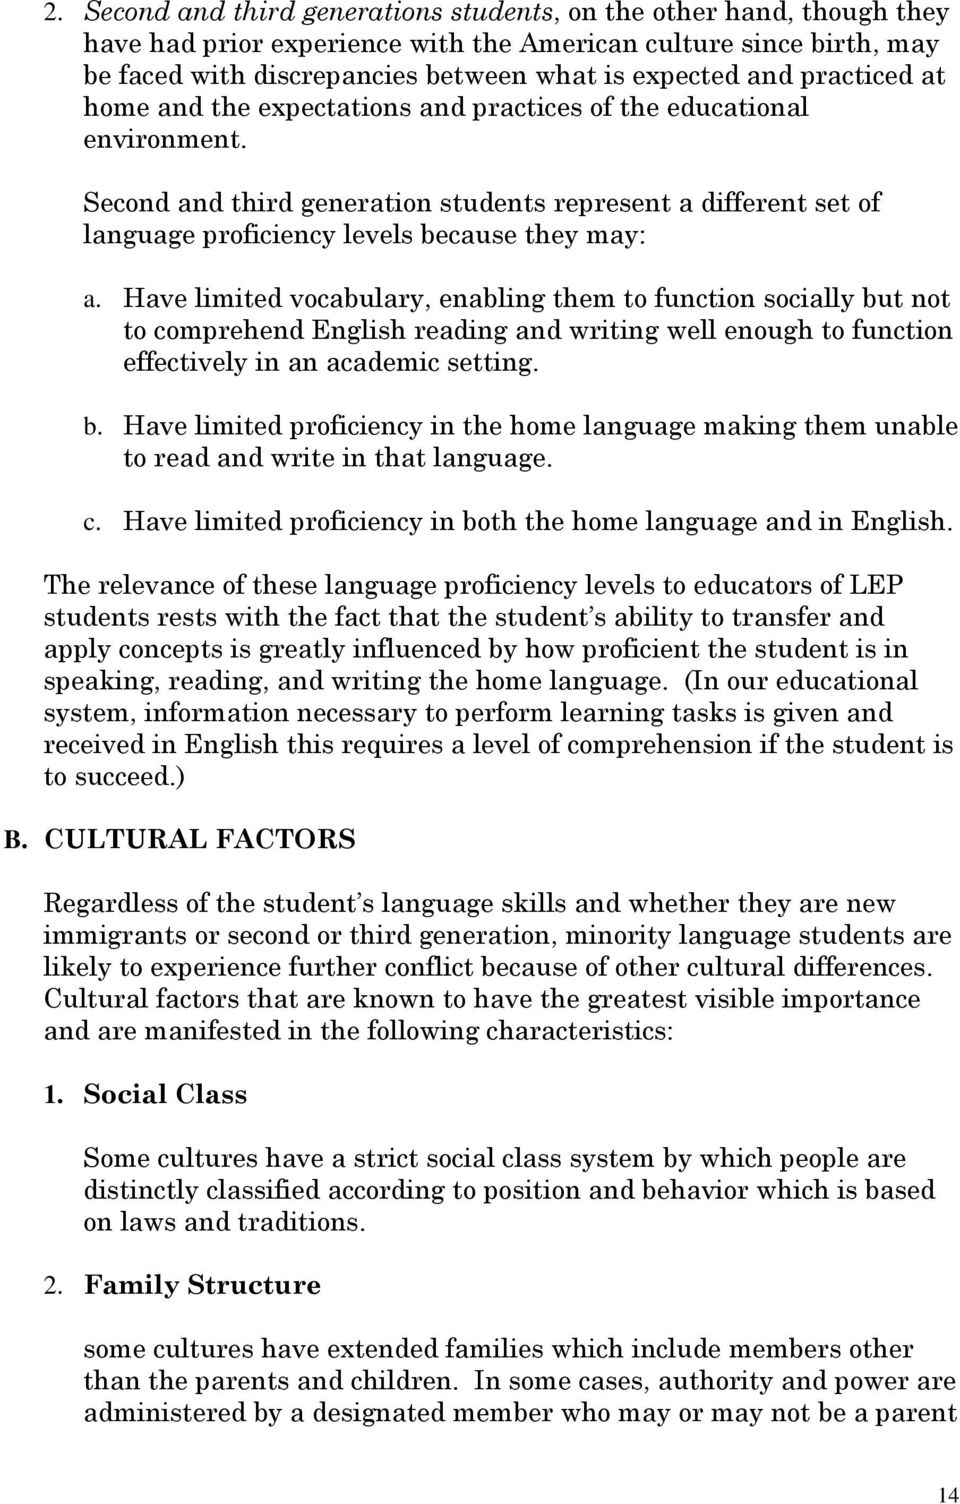 Have limited vocabulary, enabling them to function socially but not to comprehend English reading and writing well enough to function effectively in an academic setting. b. Have limited proficiency in the home language making them unable to read and write in that language.